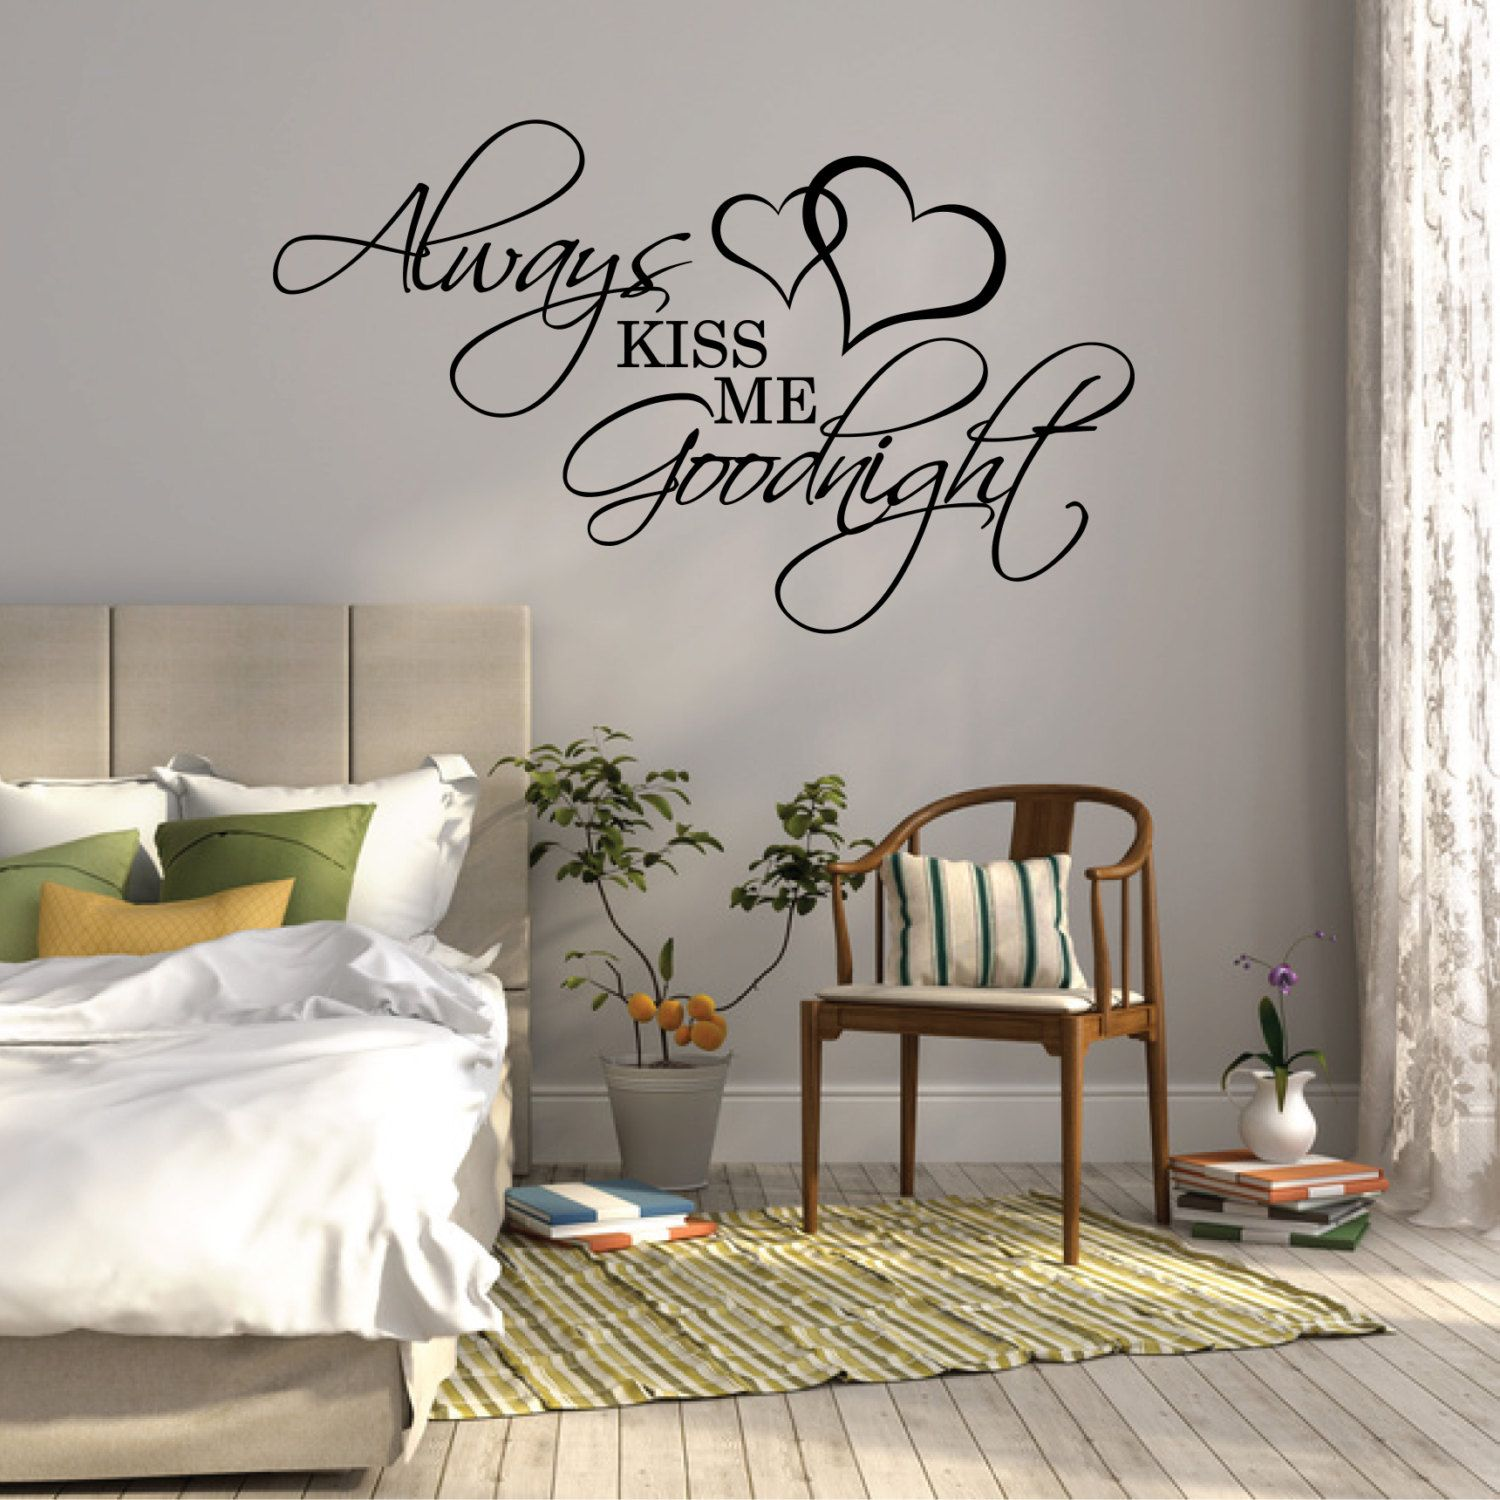 wall sticker quote always kiss me goodnight over bed